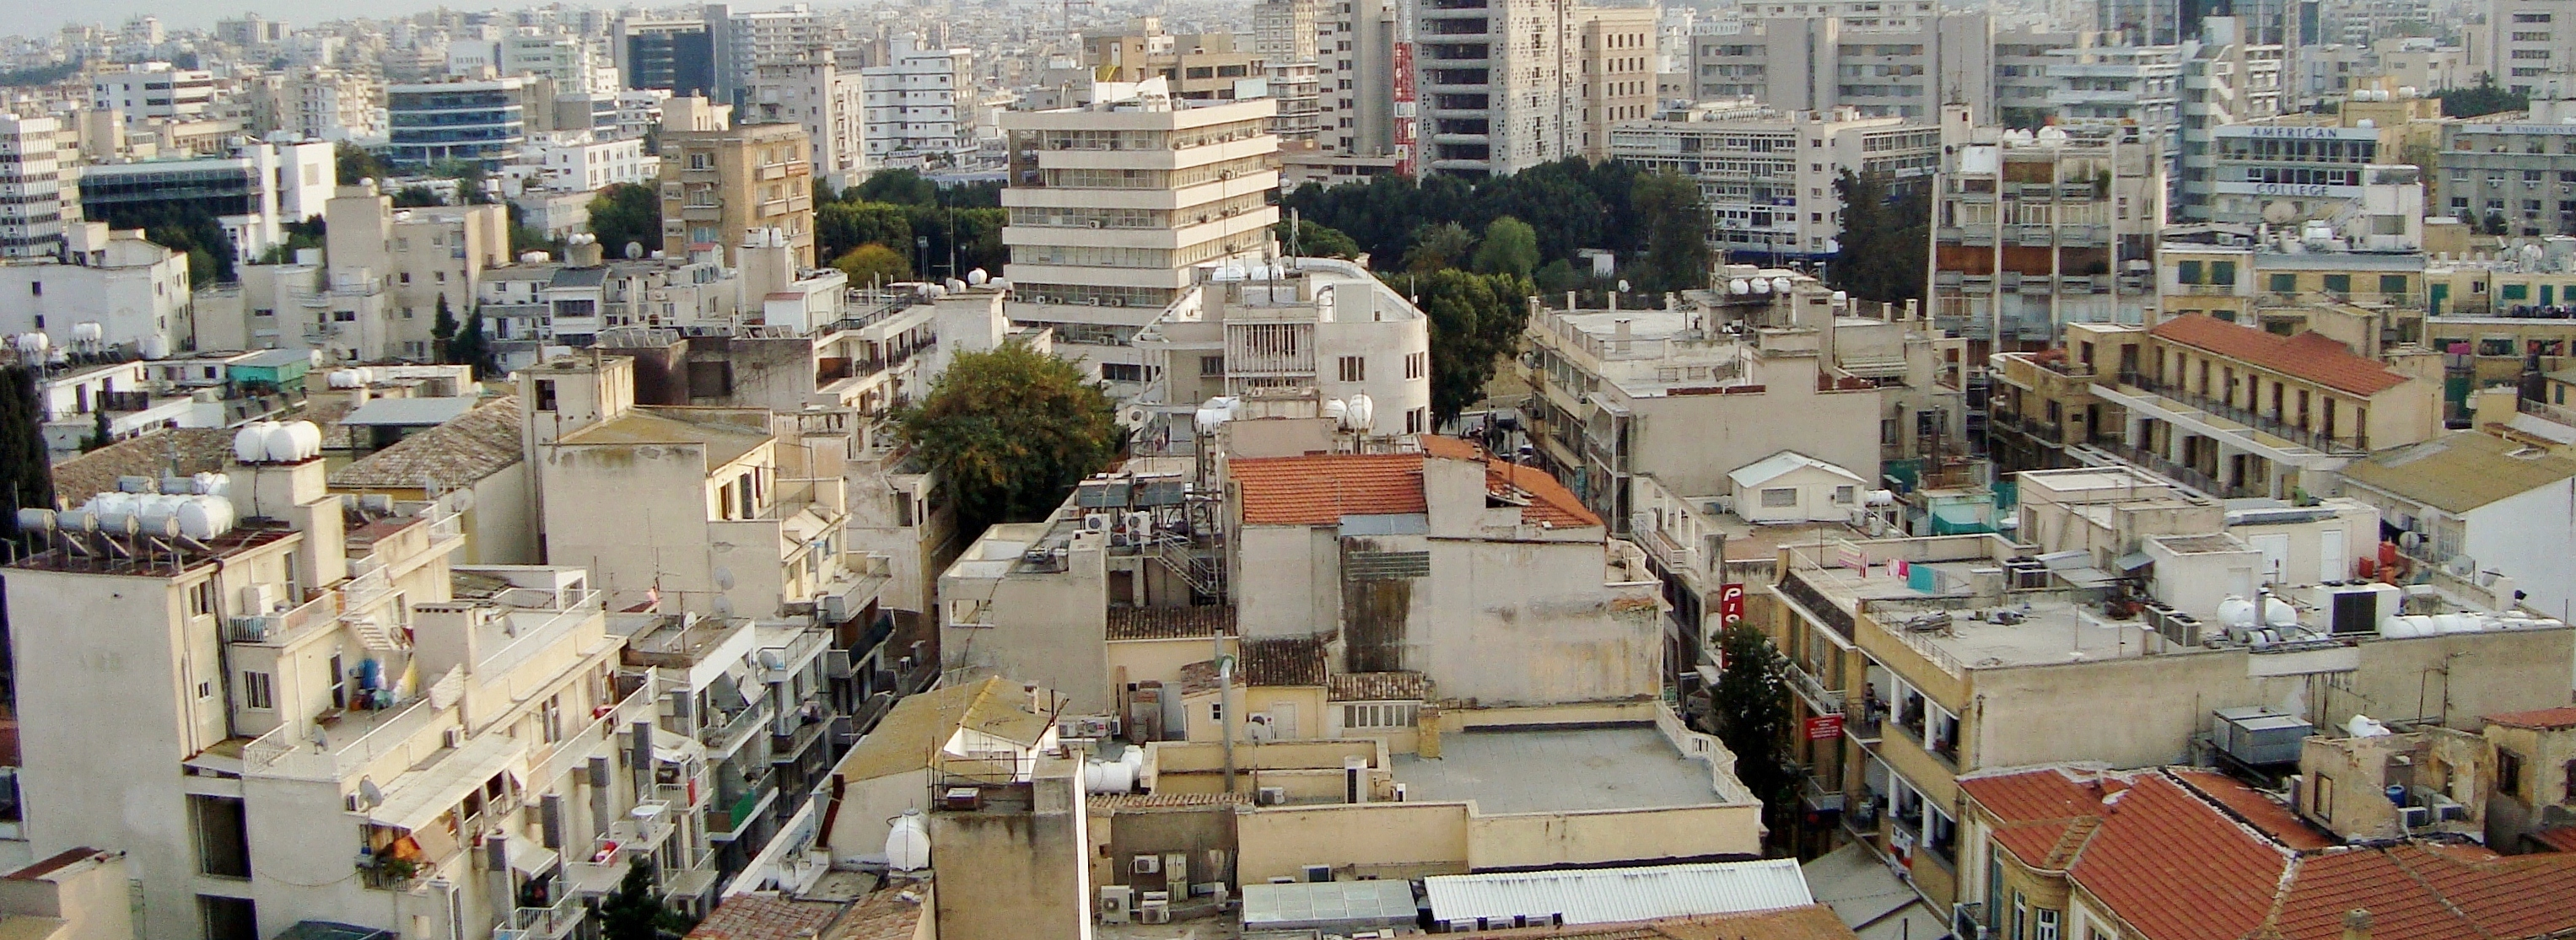 https://upload.wikimedia.org/wikipedia/commons/e/e0/Nicosia_panorama_in_evening.JPG